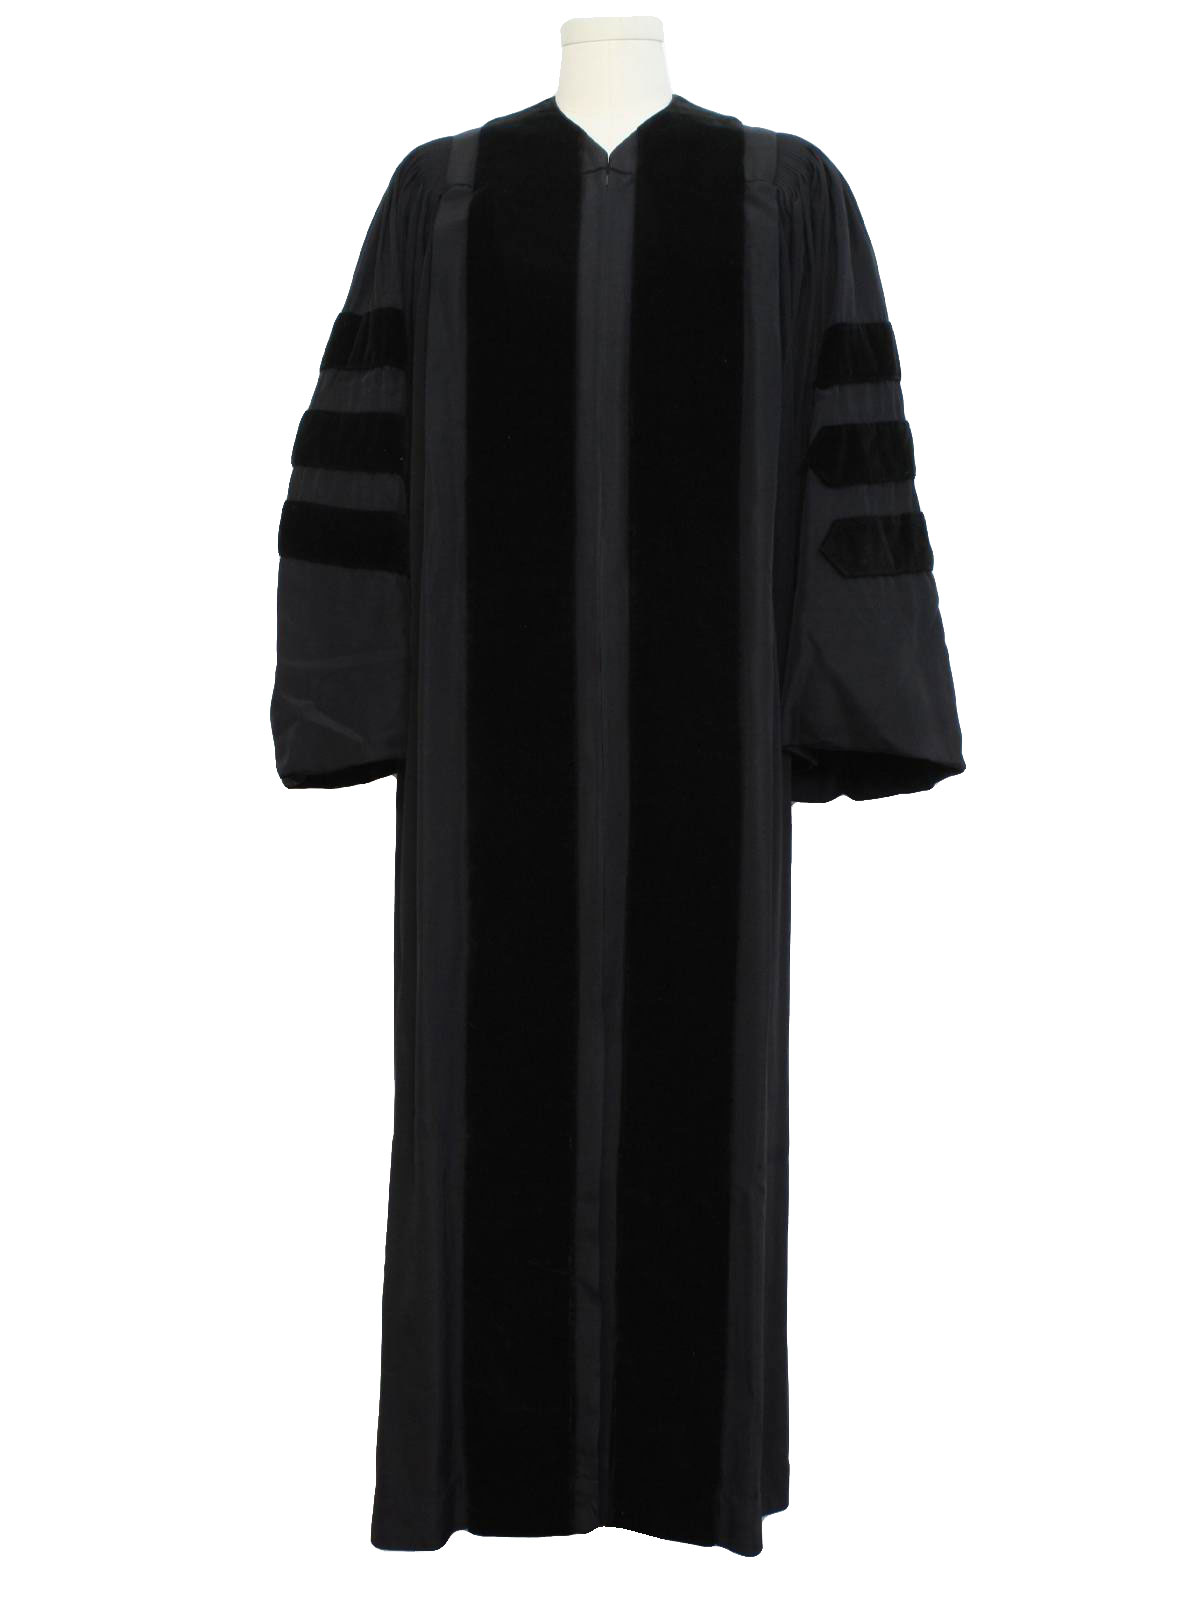 1940s Unisex Graduation Robe: 40s -Collegiate Cap and Gown Co ...